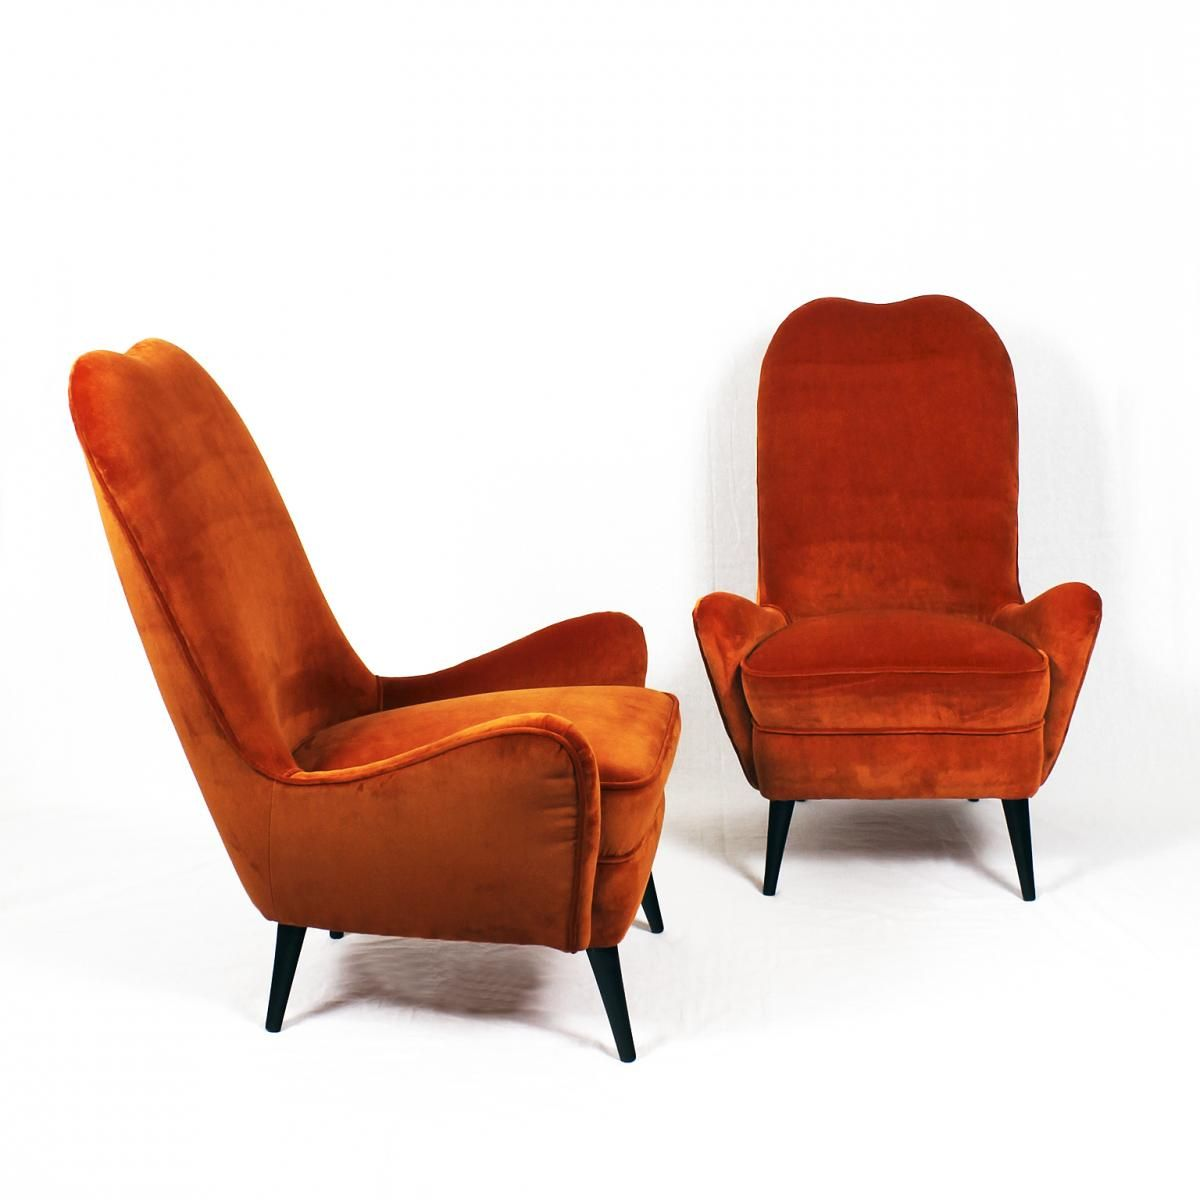 Vintage Bedroom Chairs, 1940s, Set of 2 for sale at Pamono